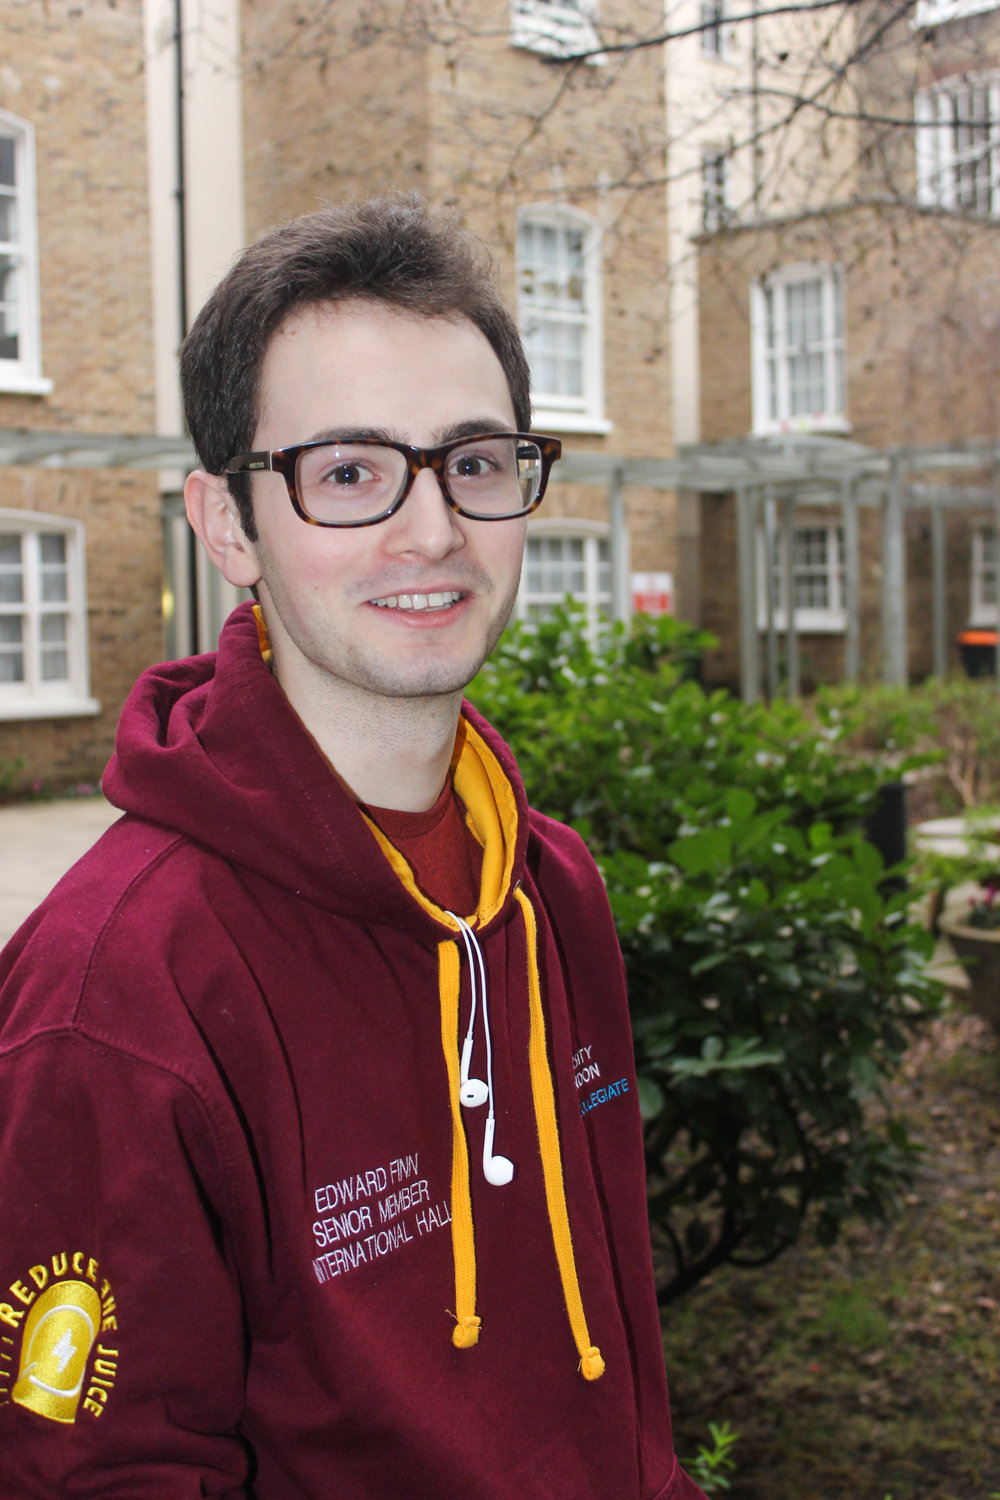 Edward Finn Senior Member Ed studies Entrepreneurship at University College London. Ed is a a big fan of hiking and the outdoors. At International Hall, He advises the IH Community Volunteers Committee along with Ana. He can be reached at ed@internationalhall.com